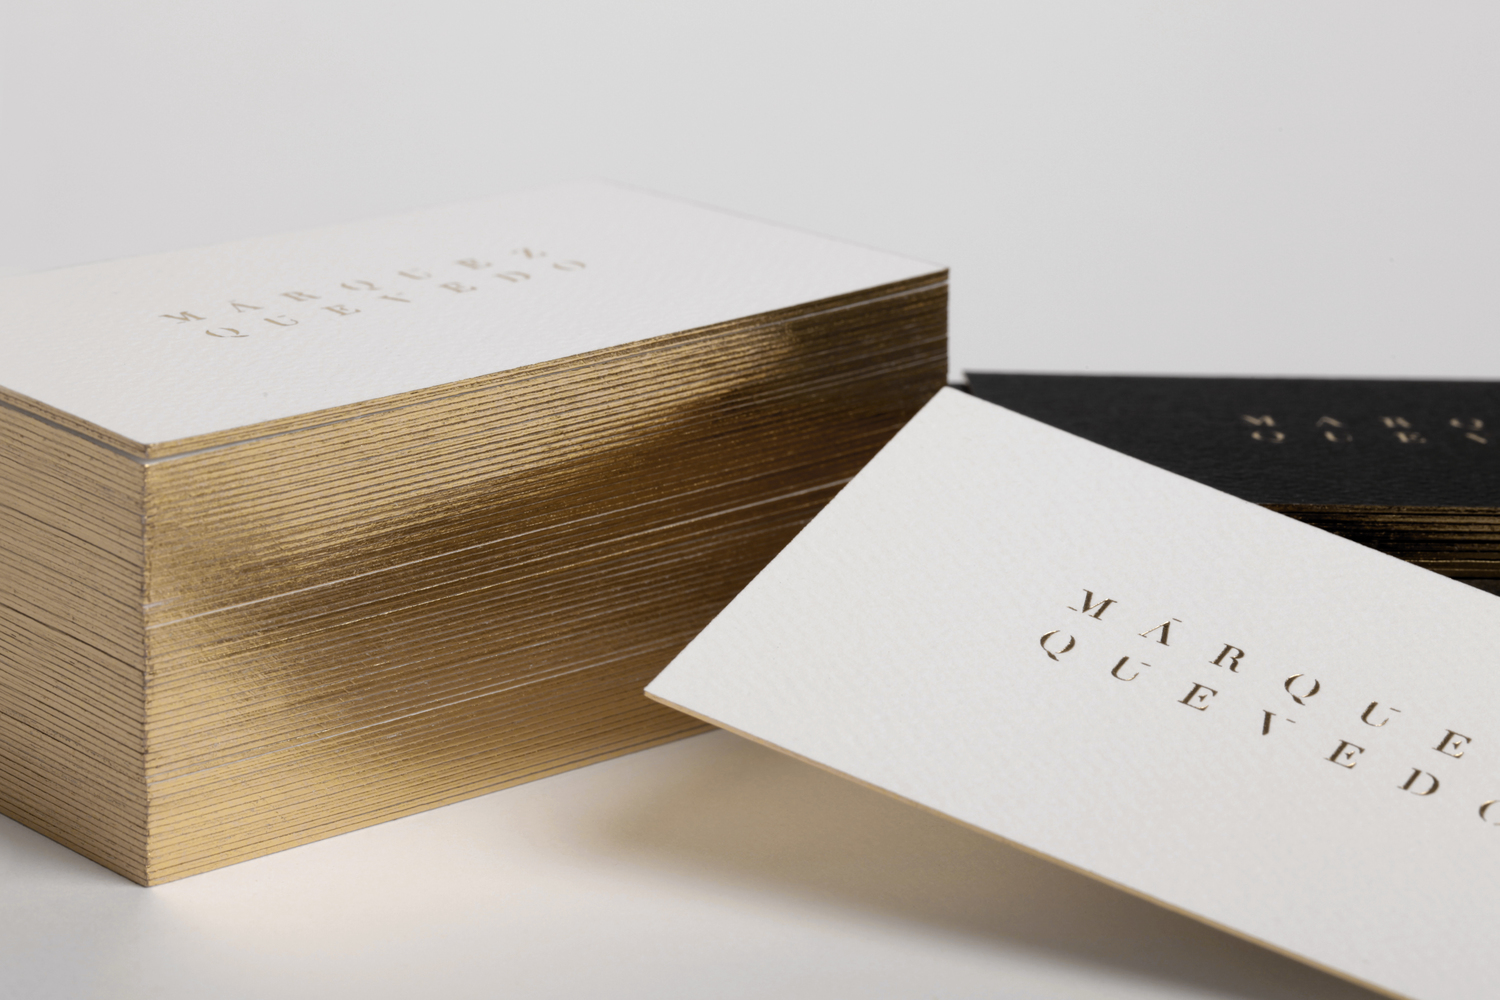 Gold block foiled business cards for architecture studio Marquez Quevedo designed by La Tortillería